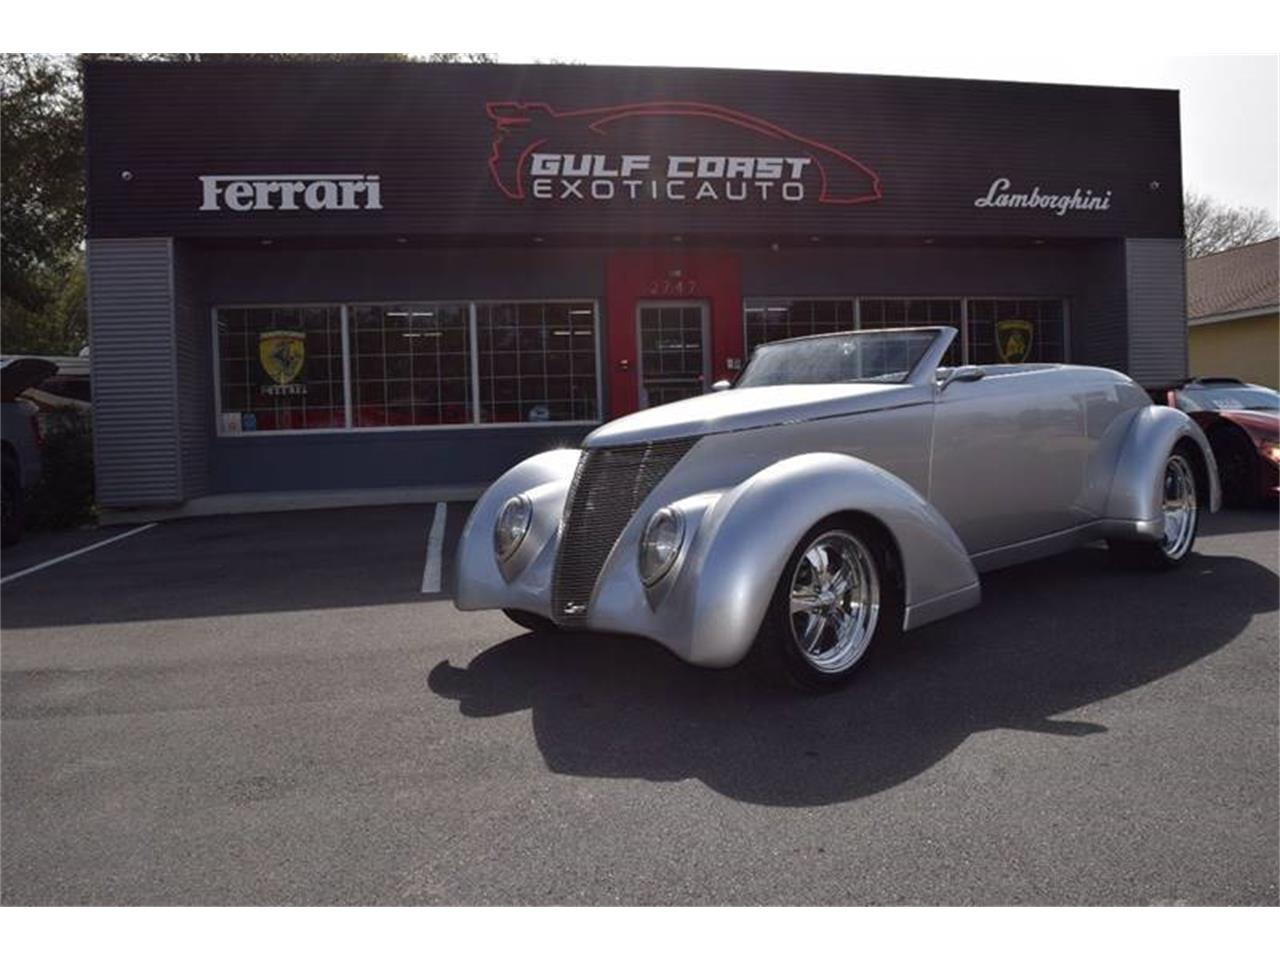 Large Picture of Classic '37 Ford Custom Coupe - $74,900.00 Offered by Gulf Coast Exotic Auto - Q4U2